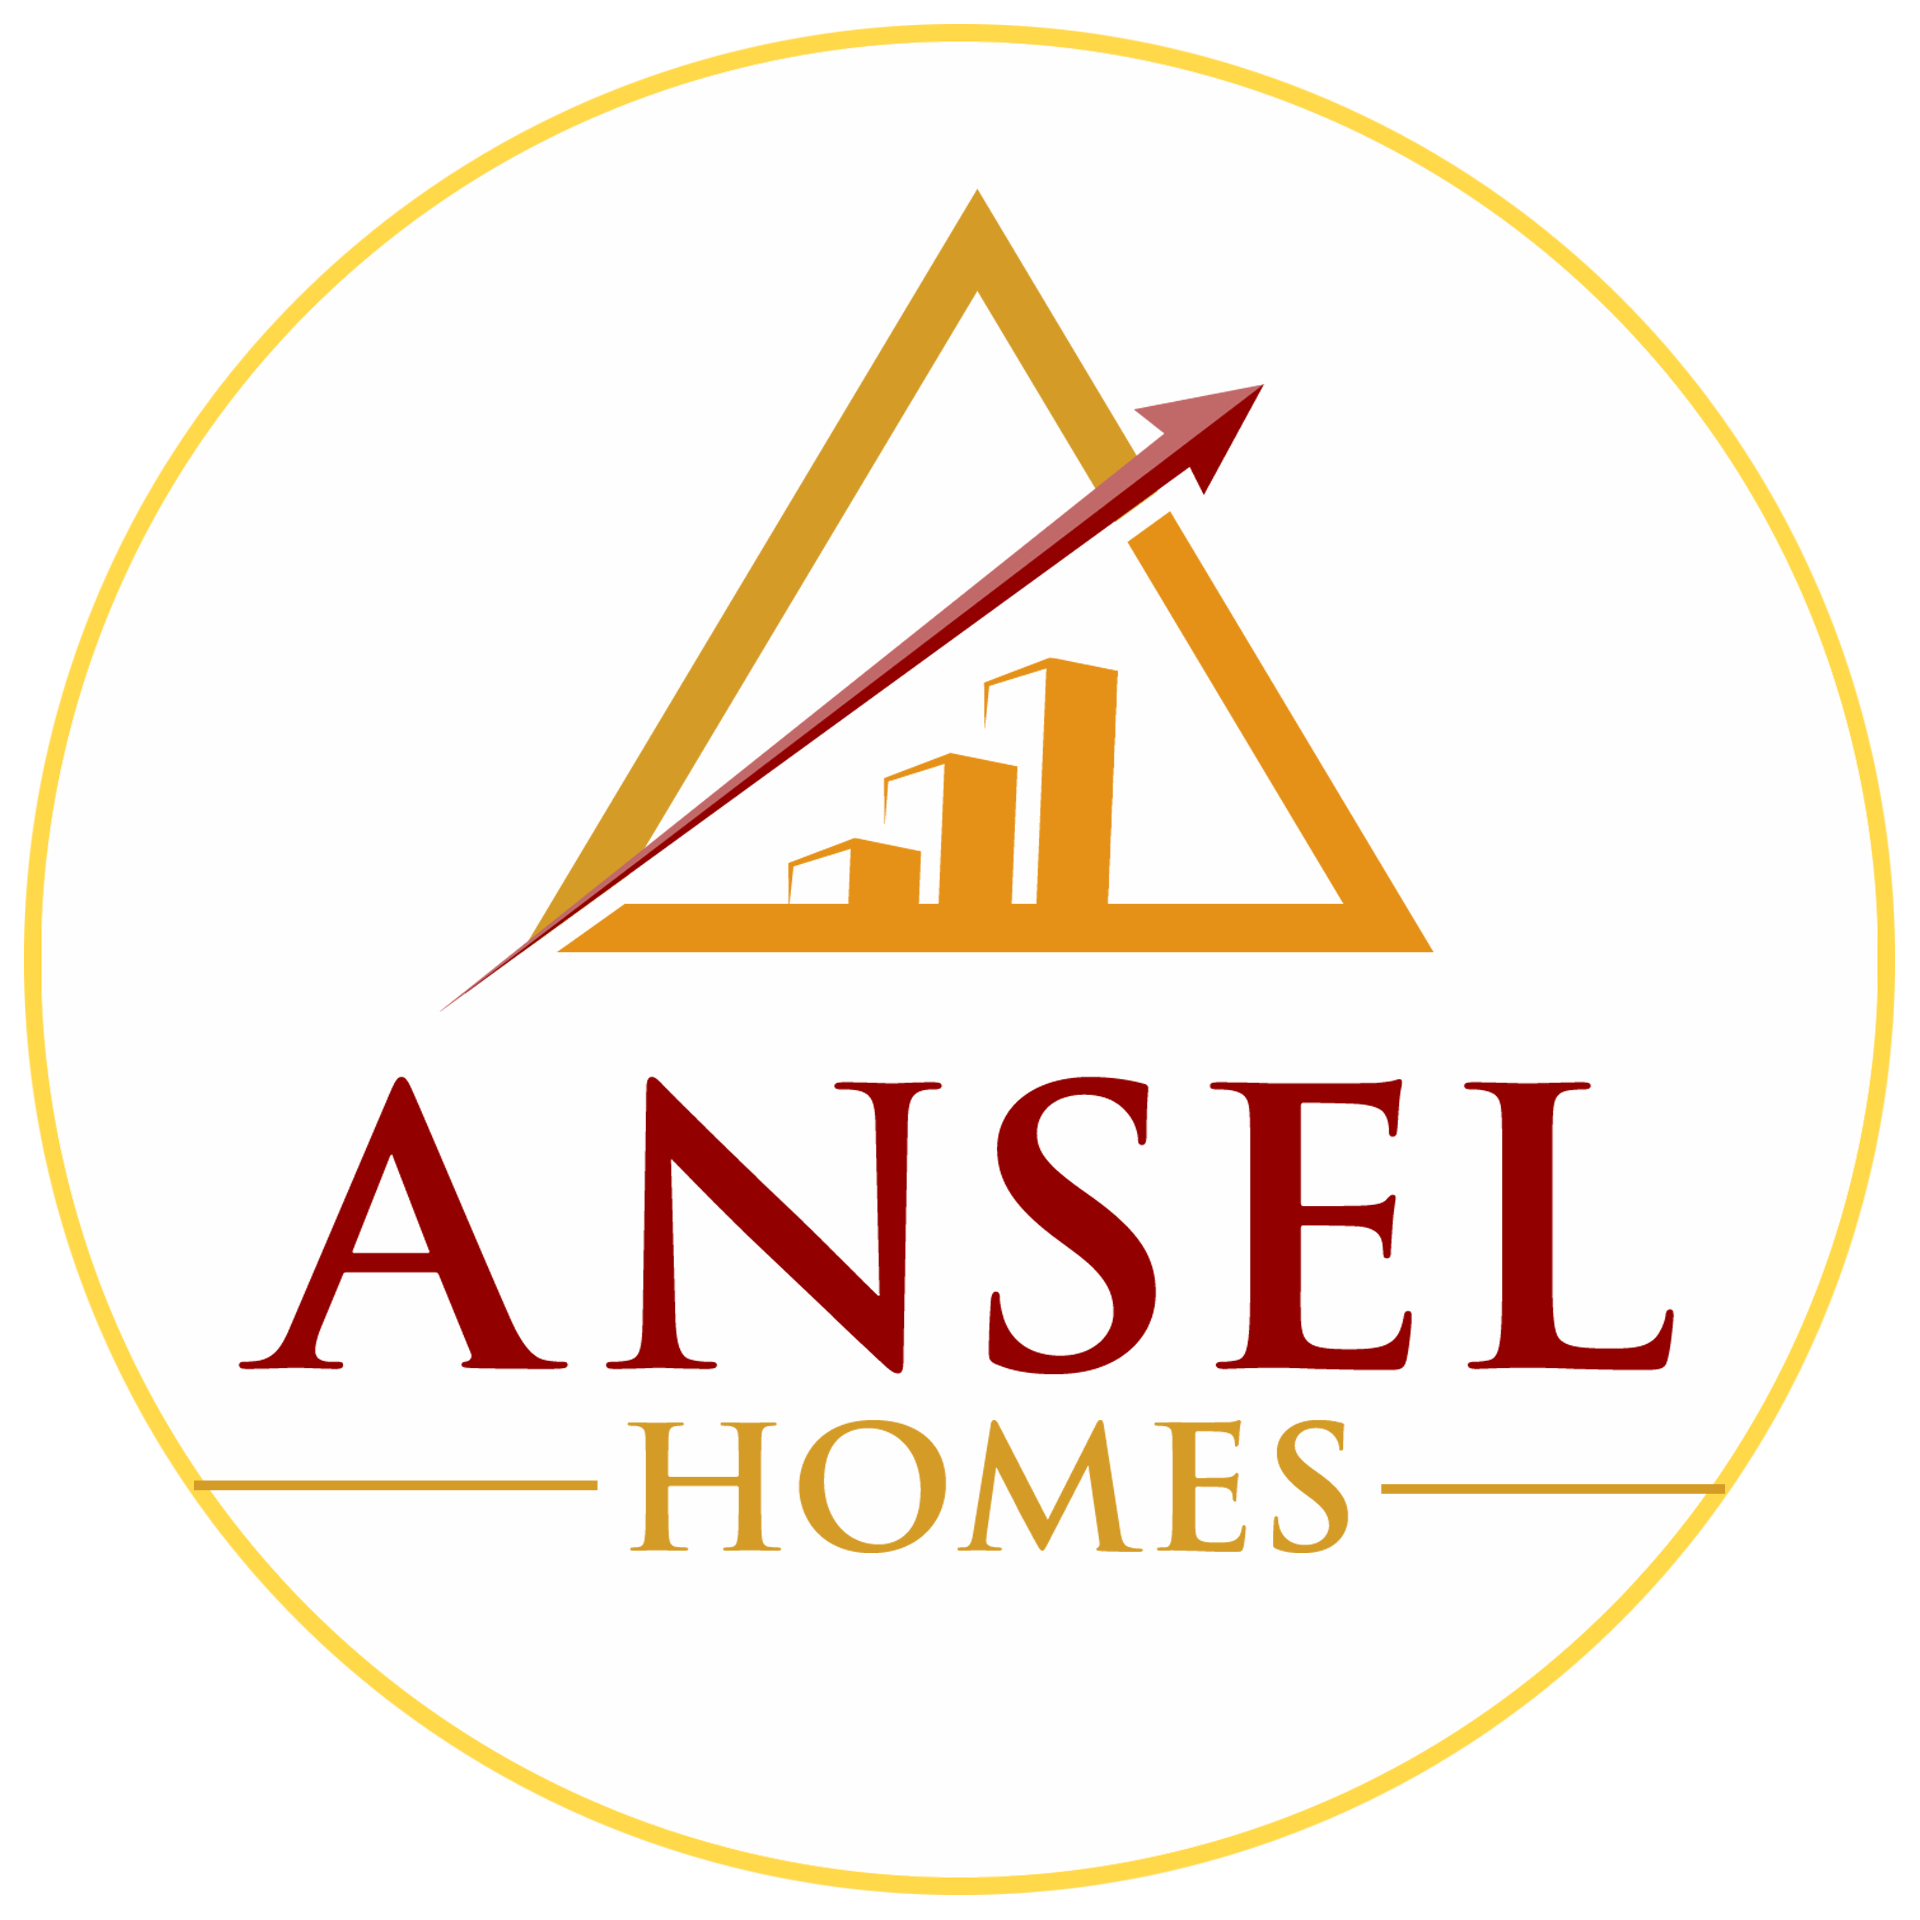 Ansel Homes